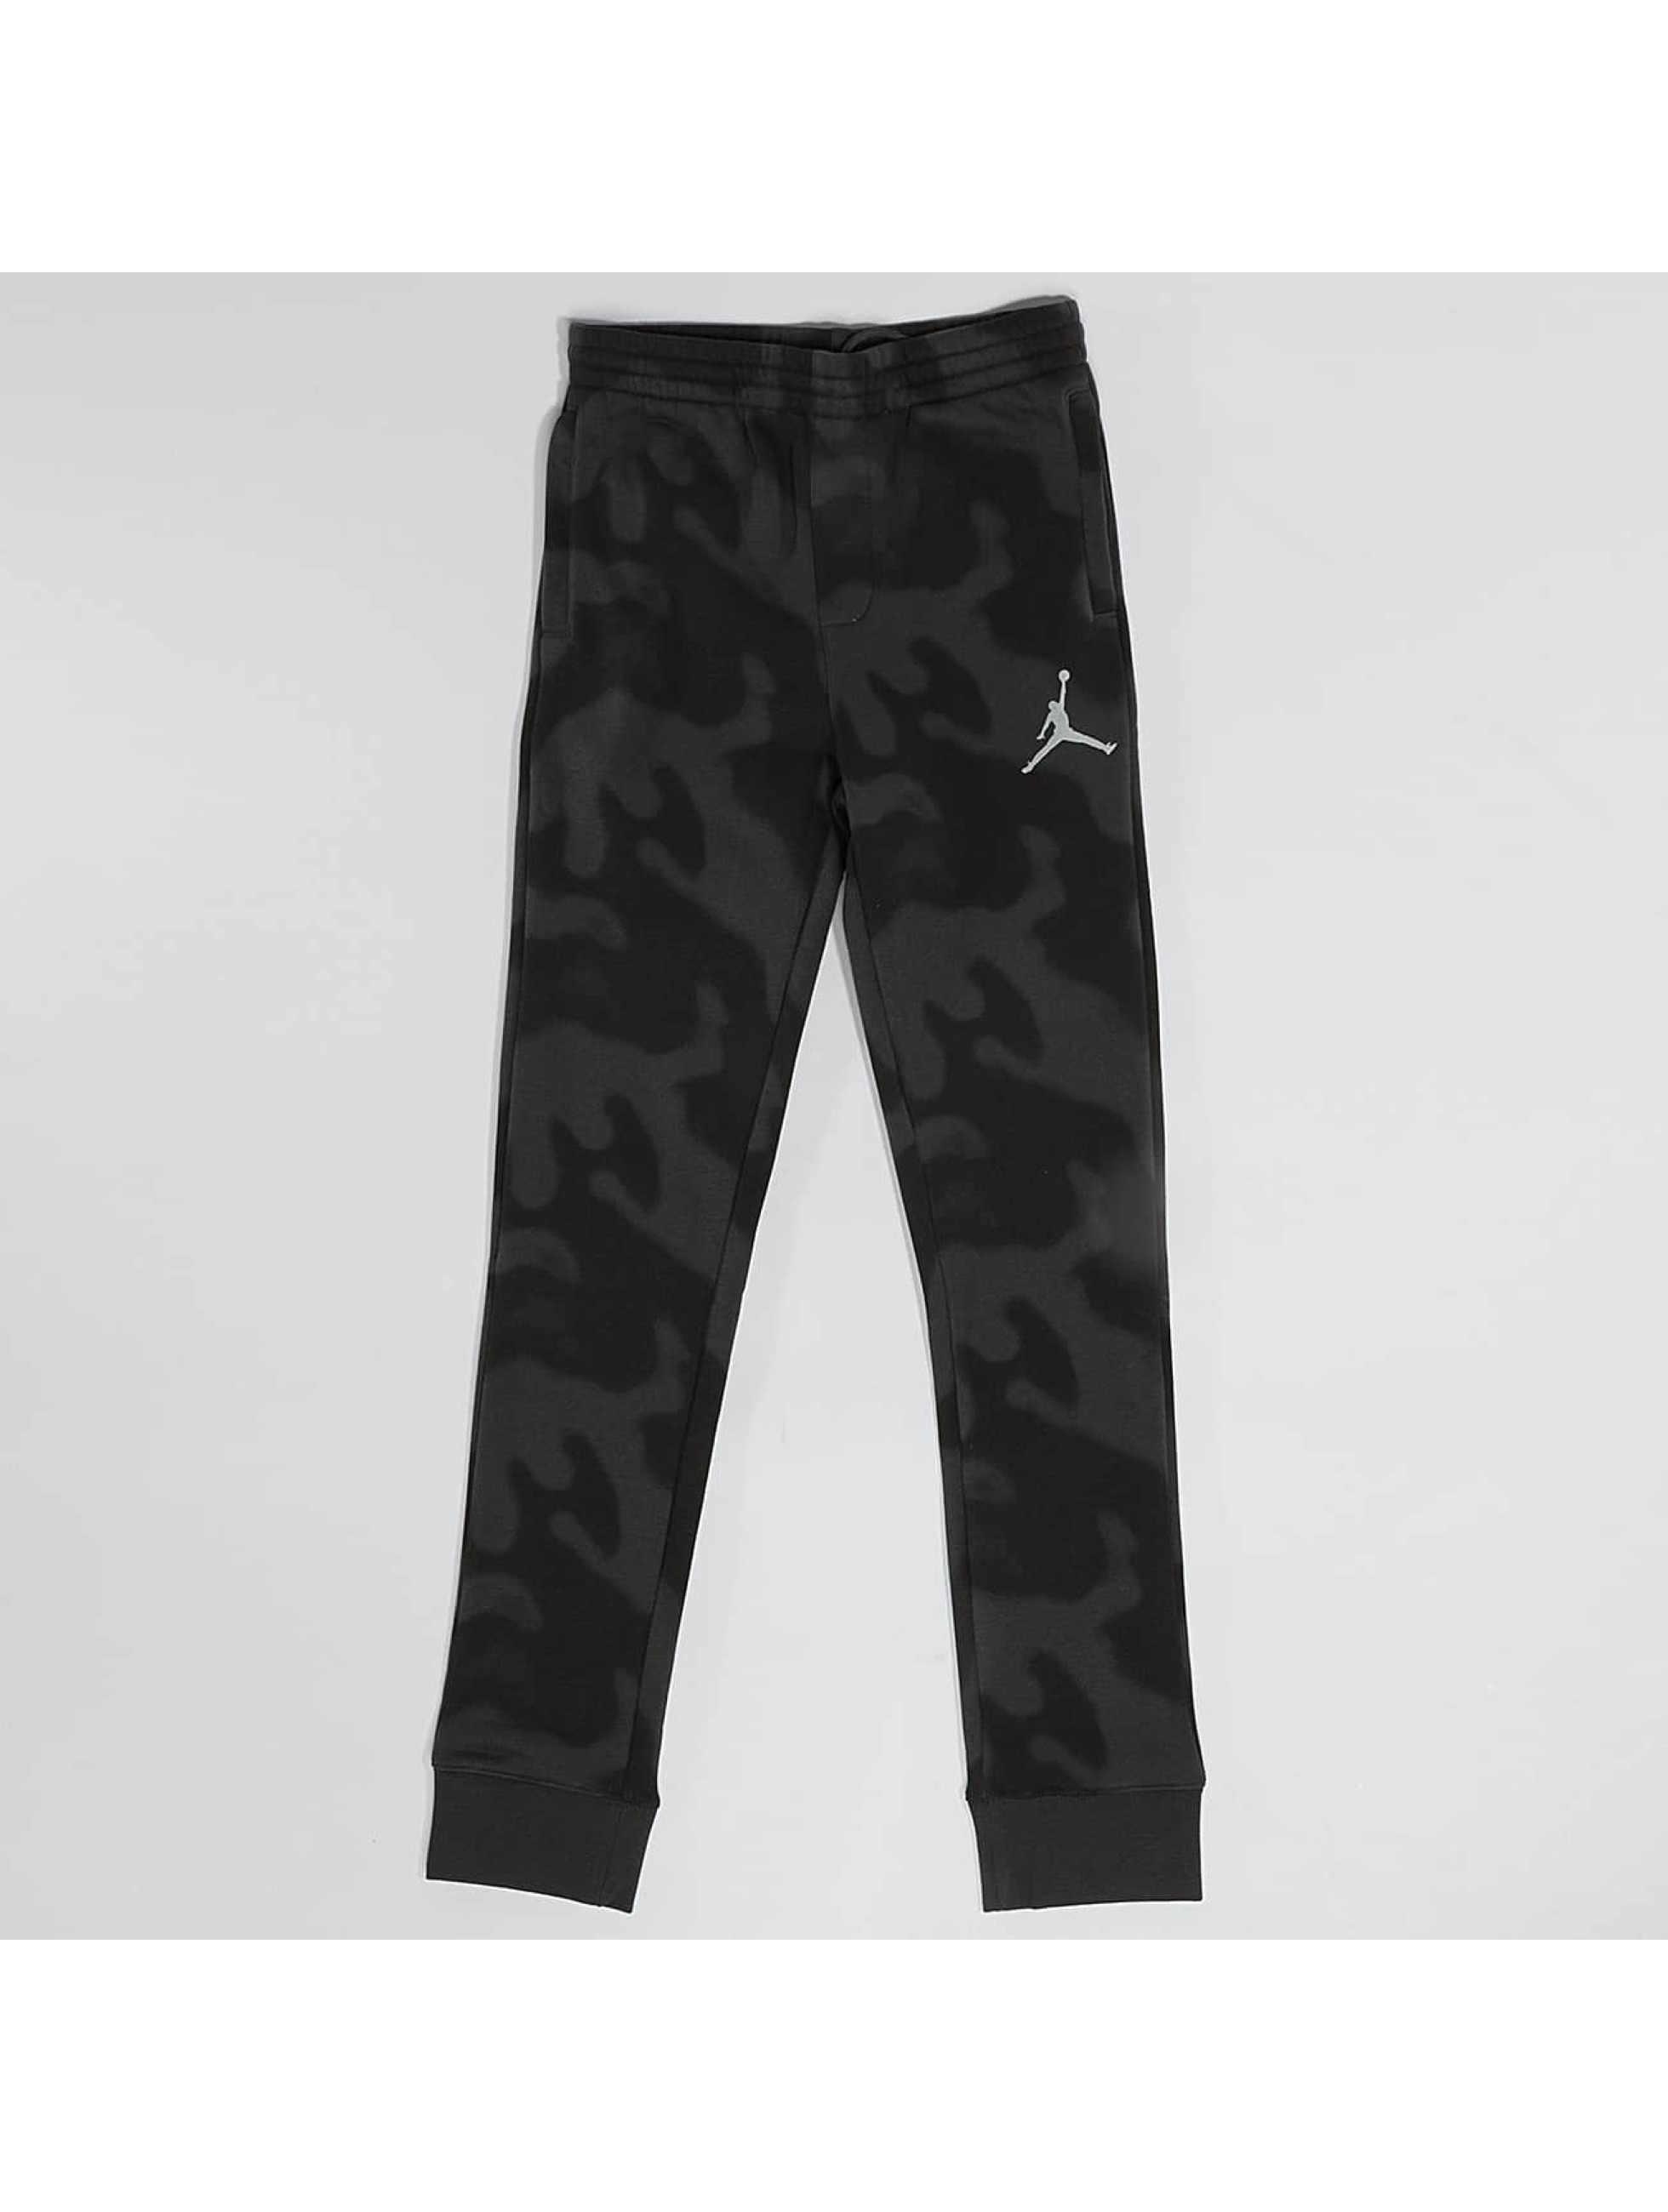 Jordan Kinder Jogginghose P51 in schwarz